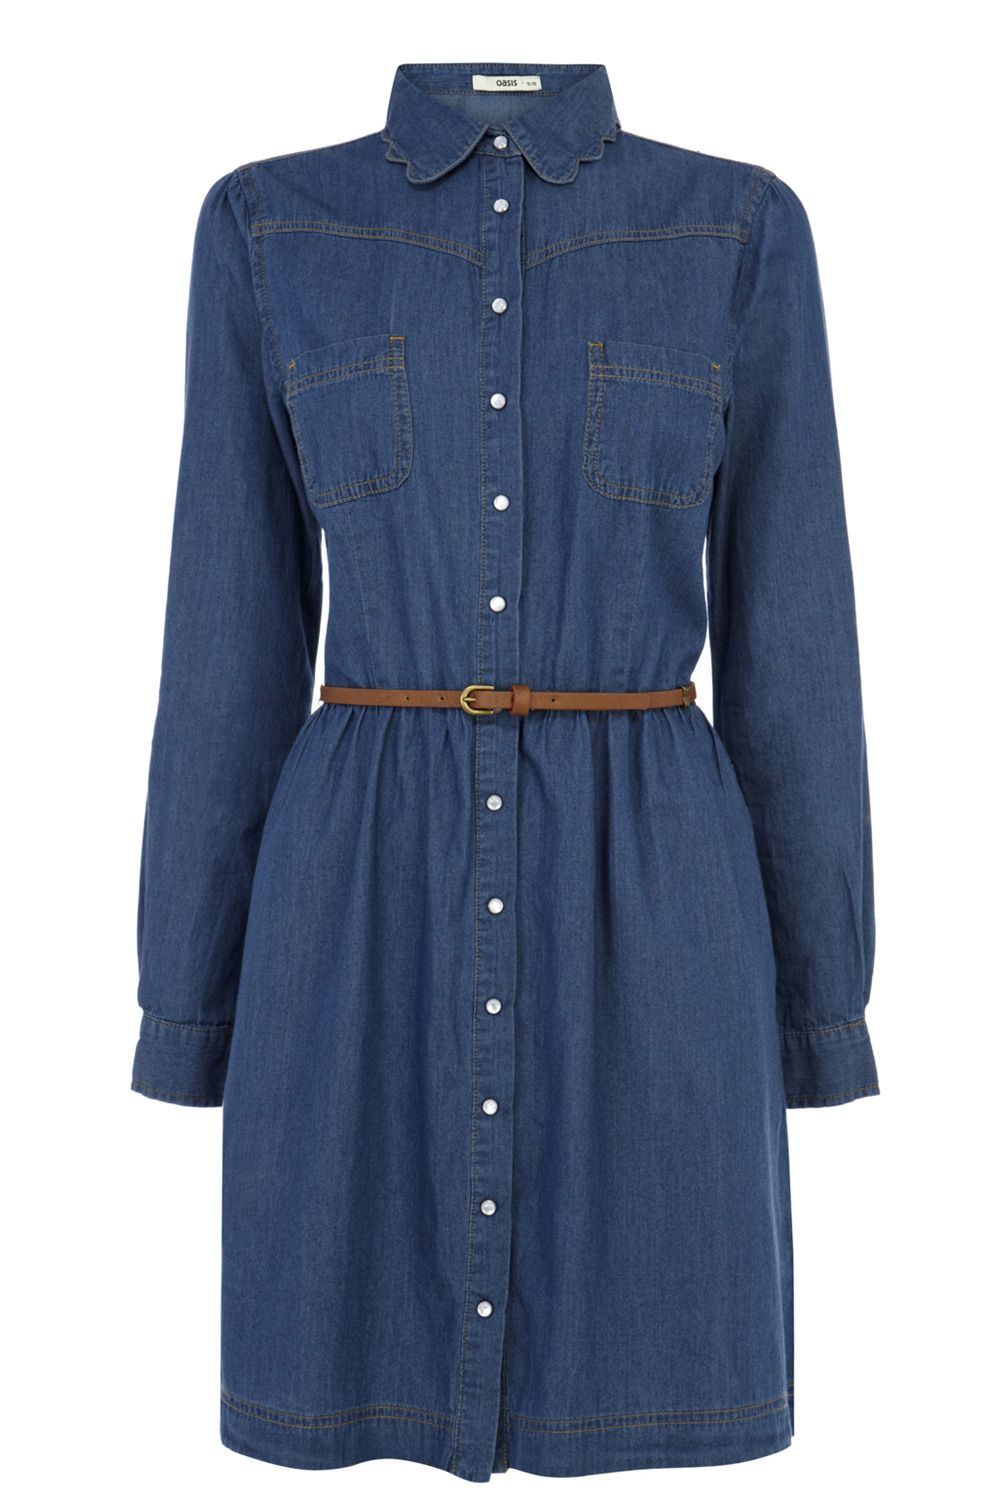 Scallop collar shirt dress